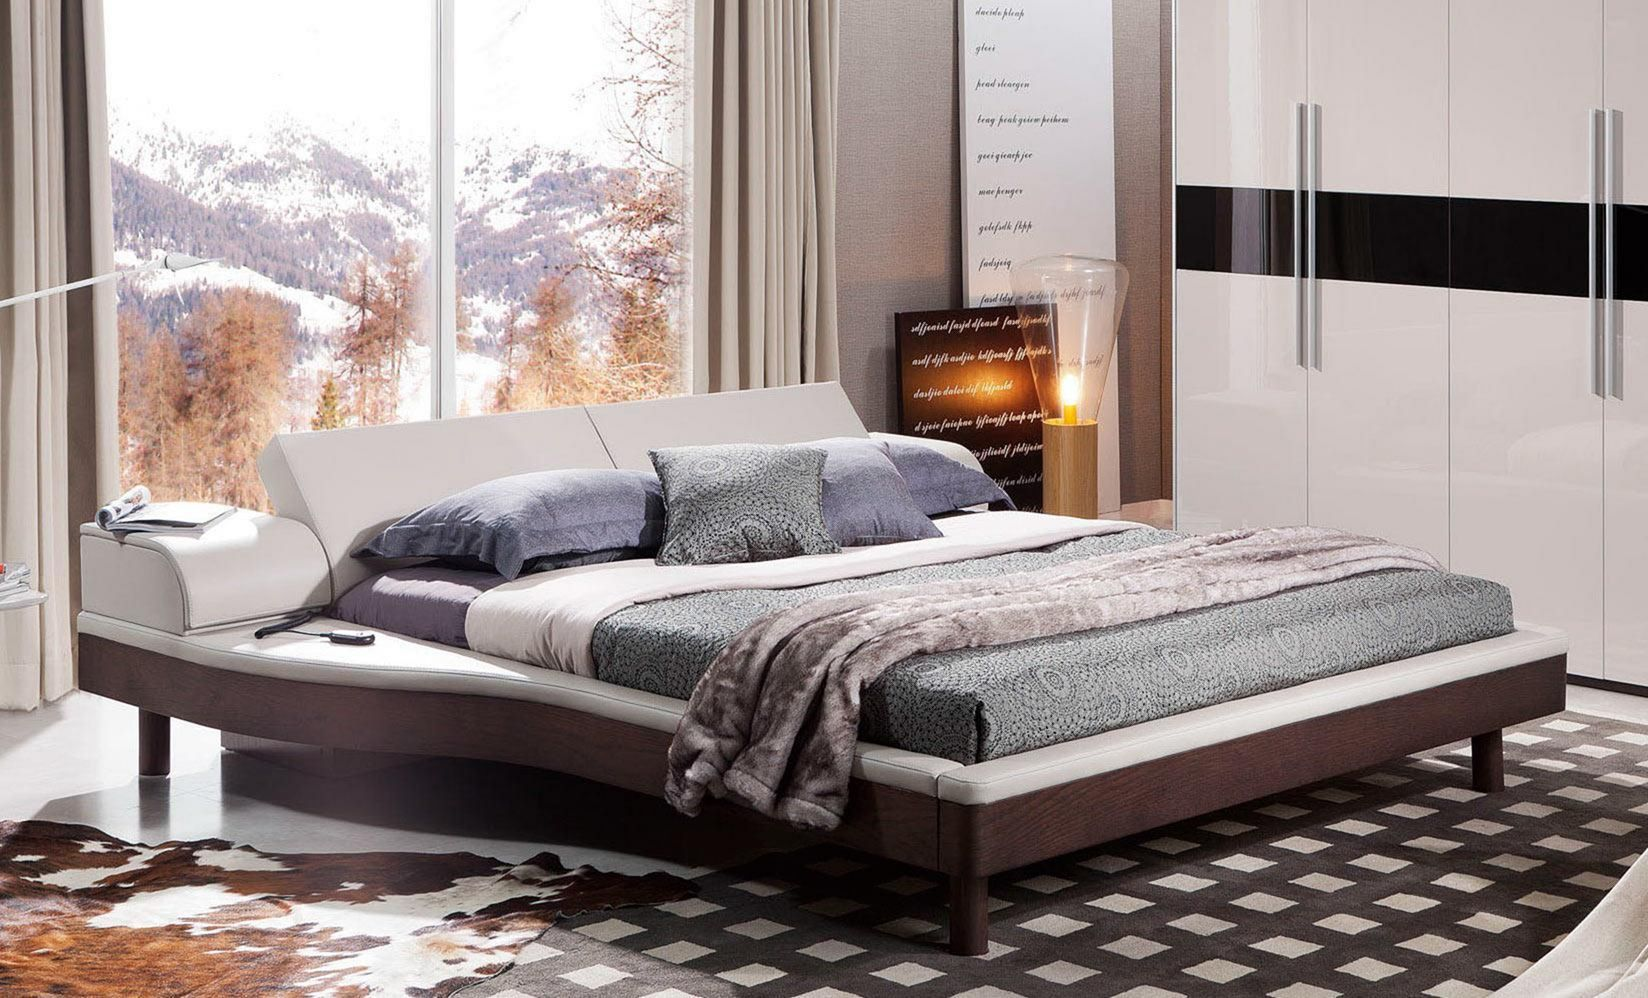 15 Chic and Warm Minimalist Bedroom Interior Ideas for